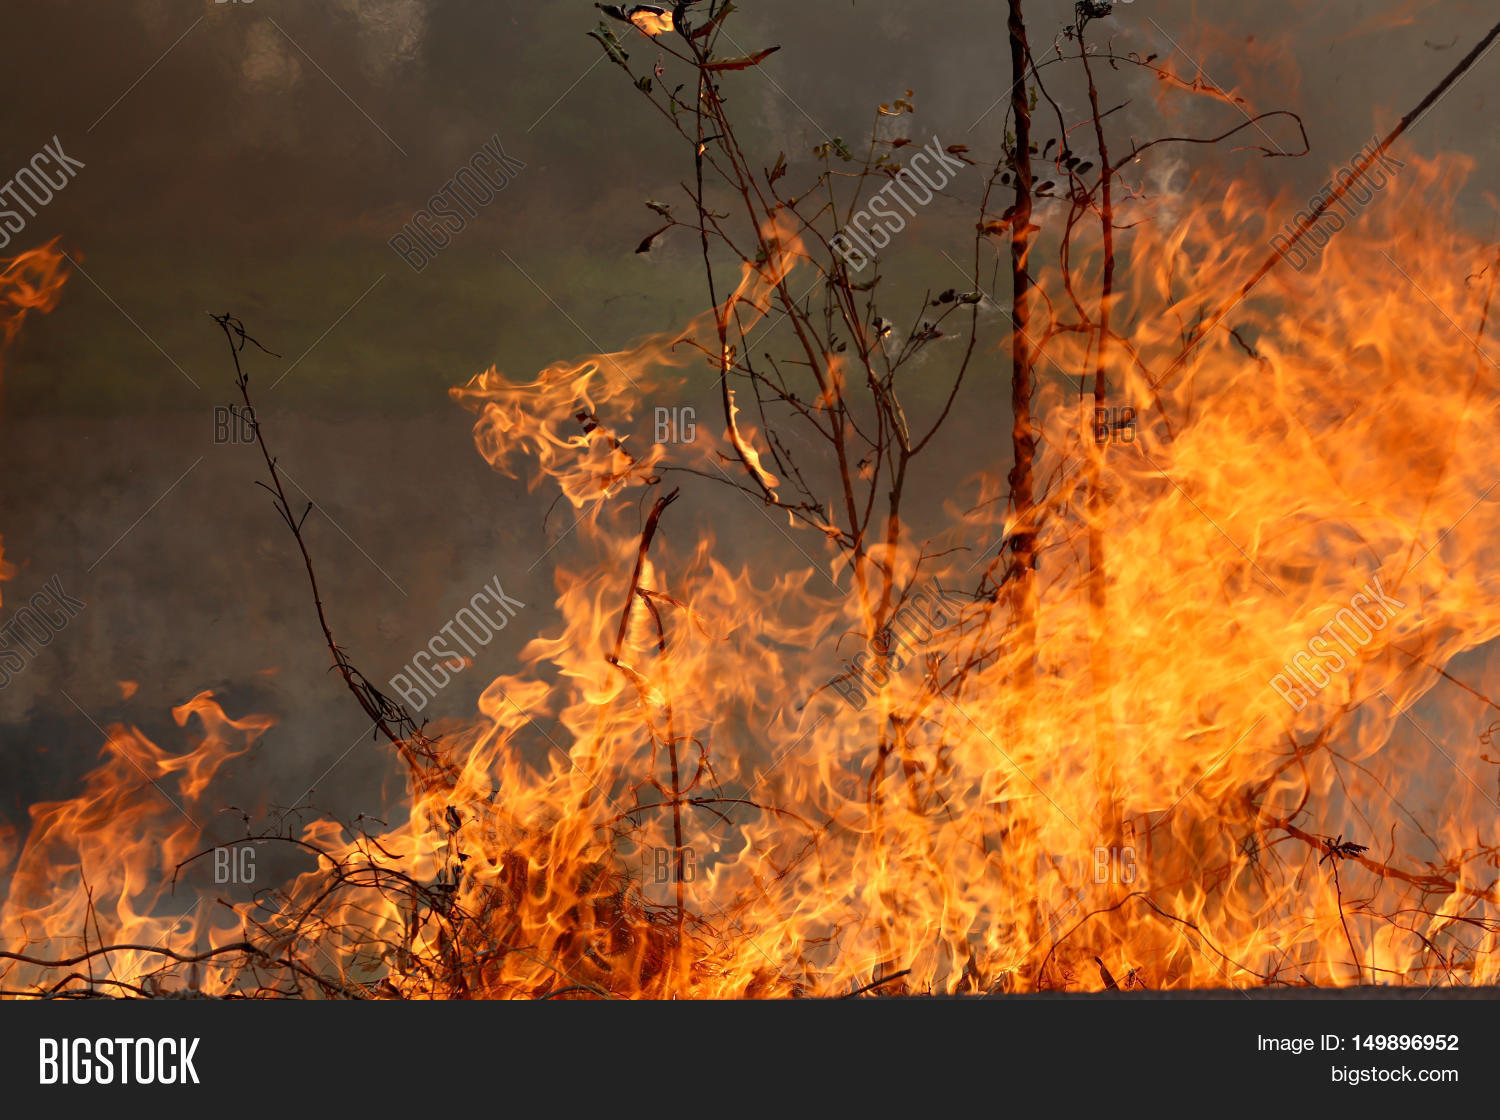 Summer Wildfires Image & Photo (Free Trial) | Bigstock